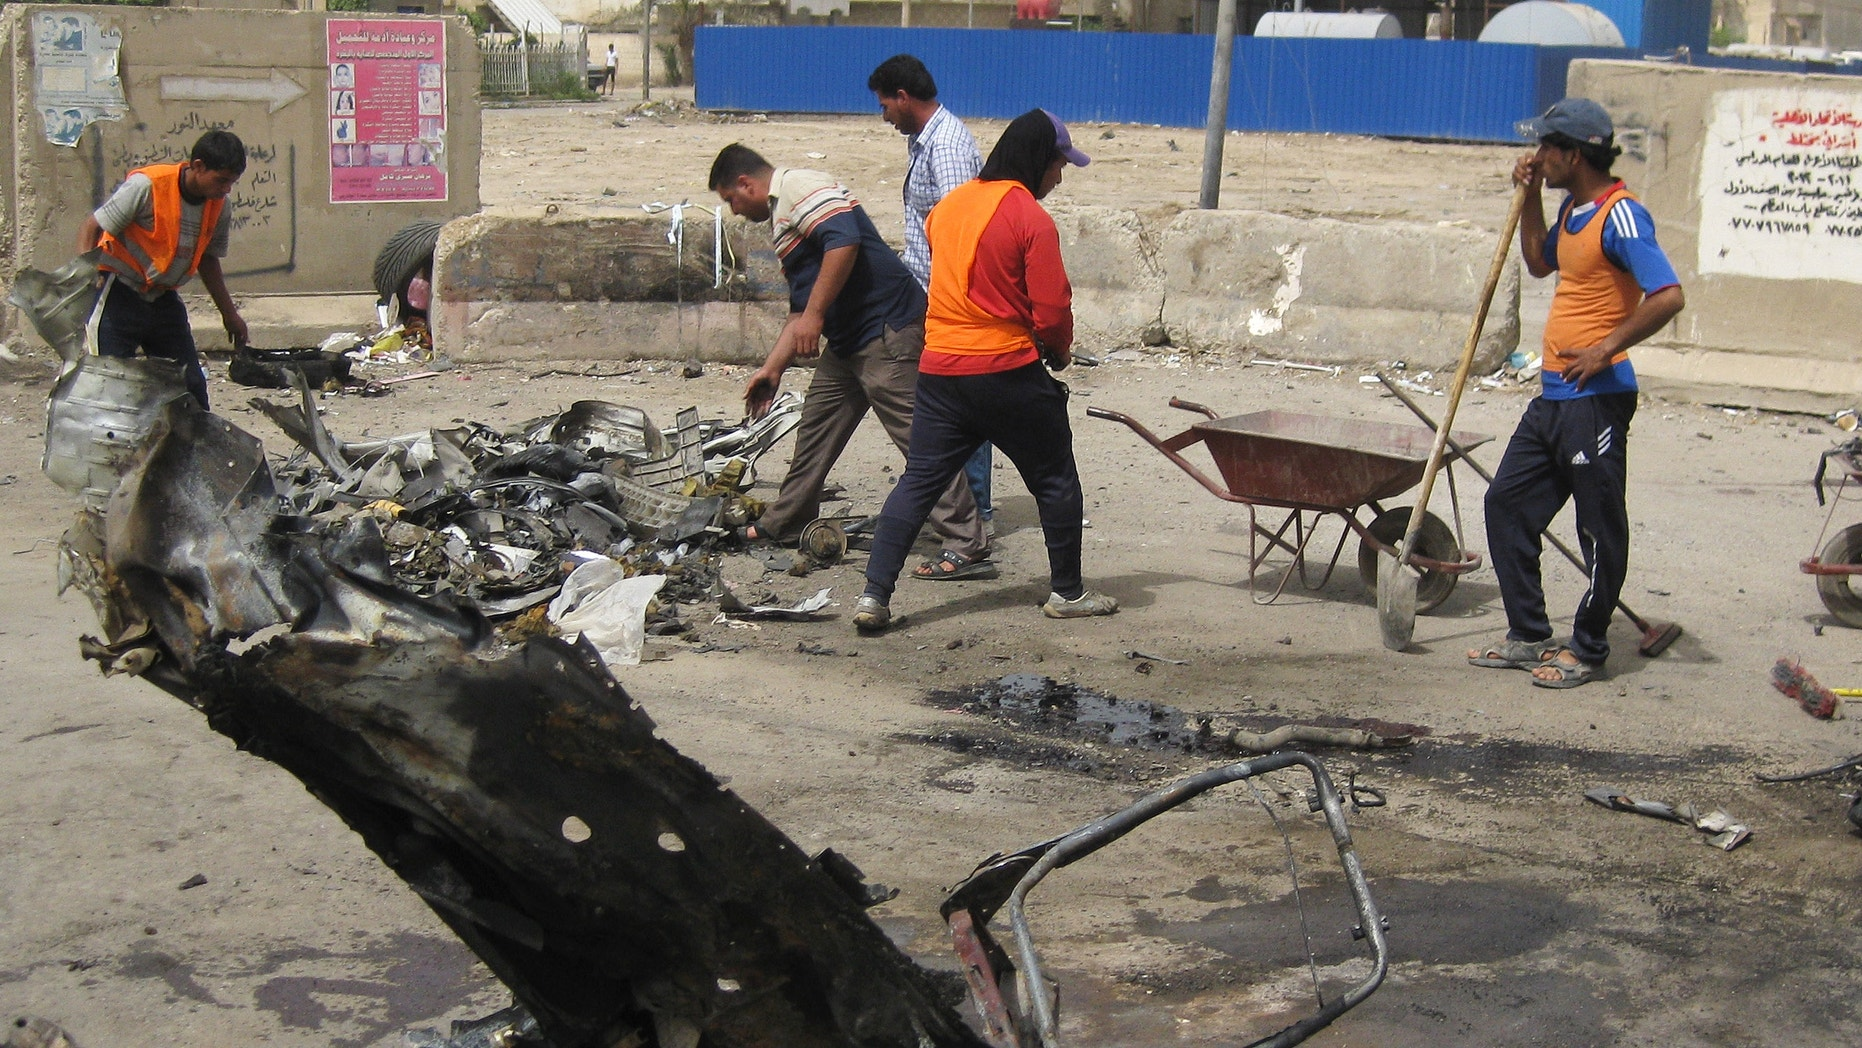 April 19, 2012: Baghdad municipality workers clean up after a car bomb attack in Palestine Street, Baghdad.